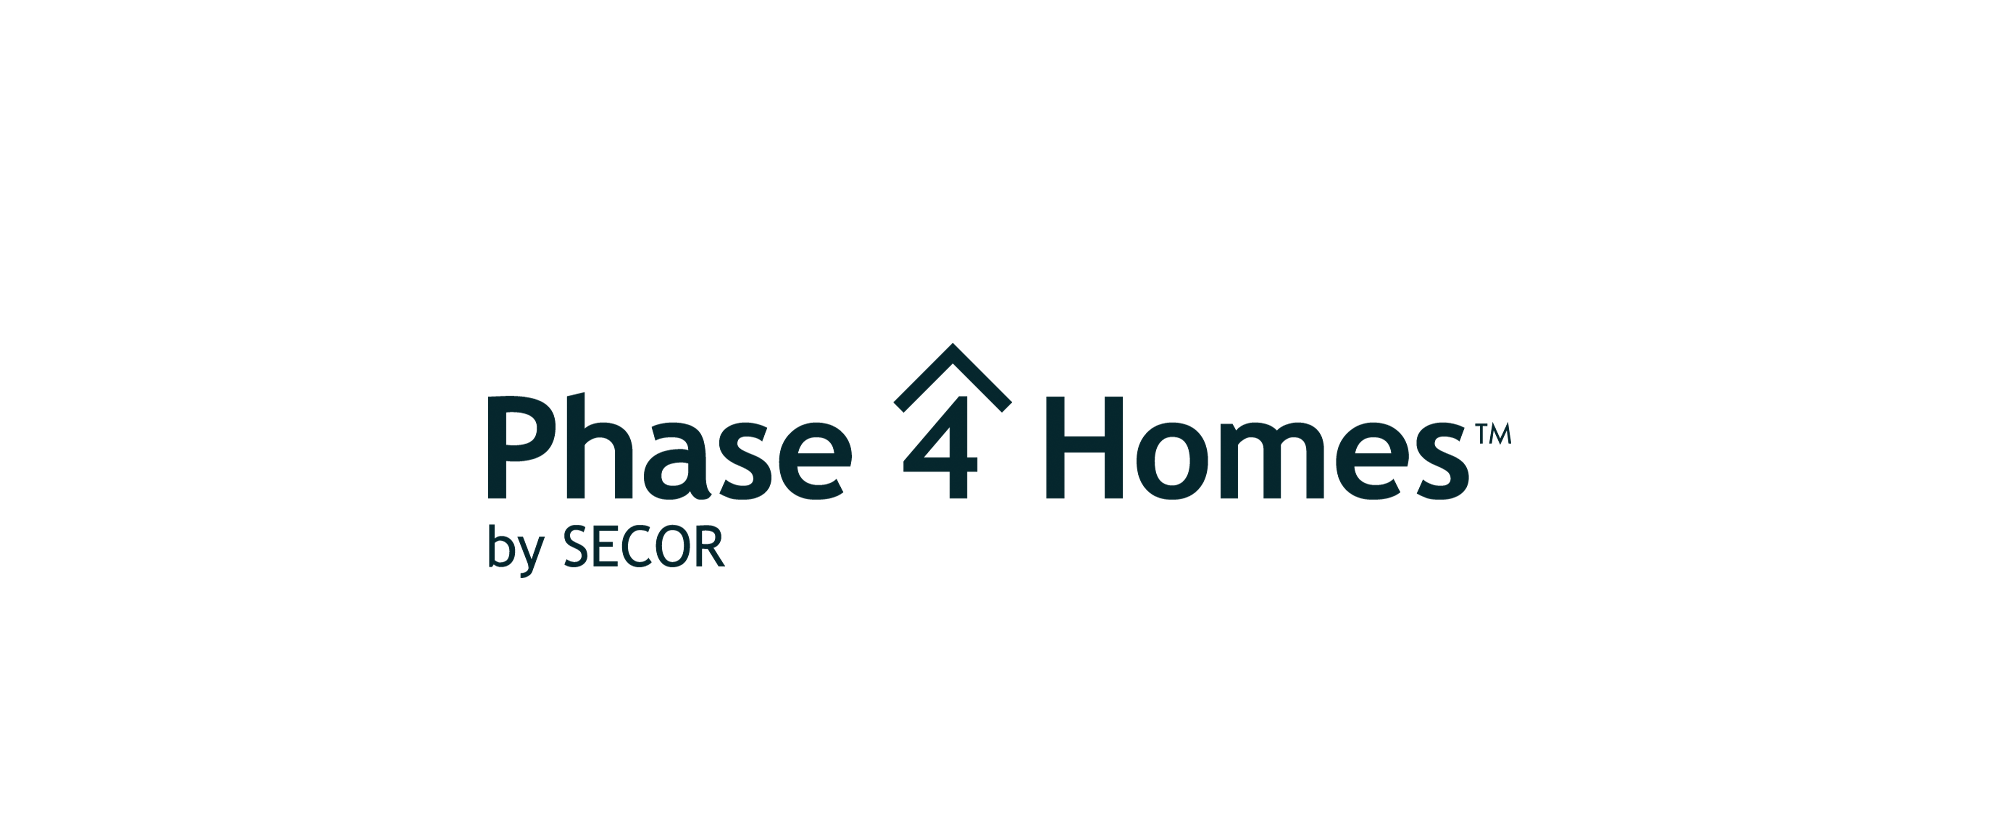 Phase 4 Homes by Secor